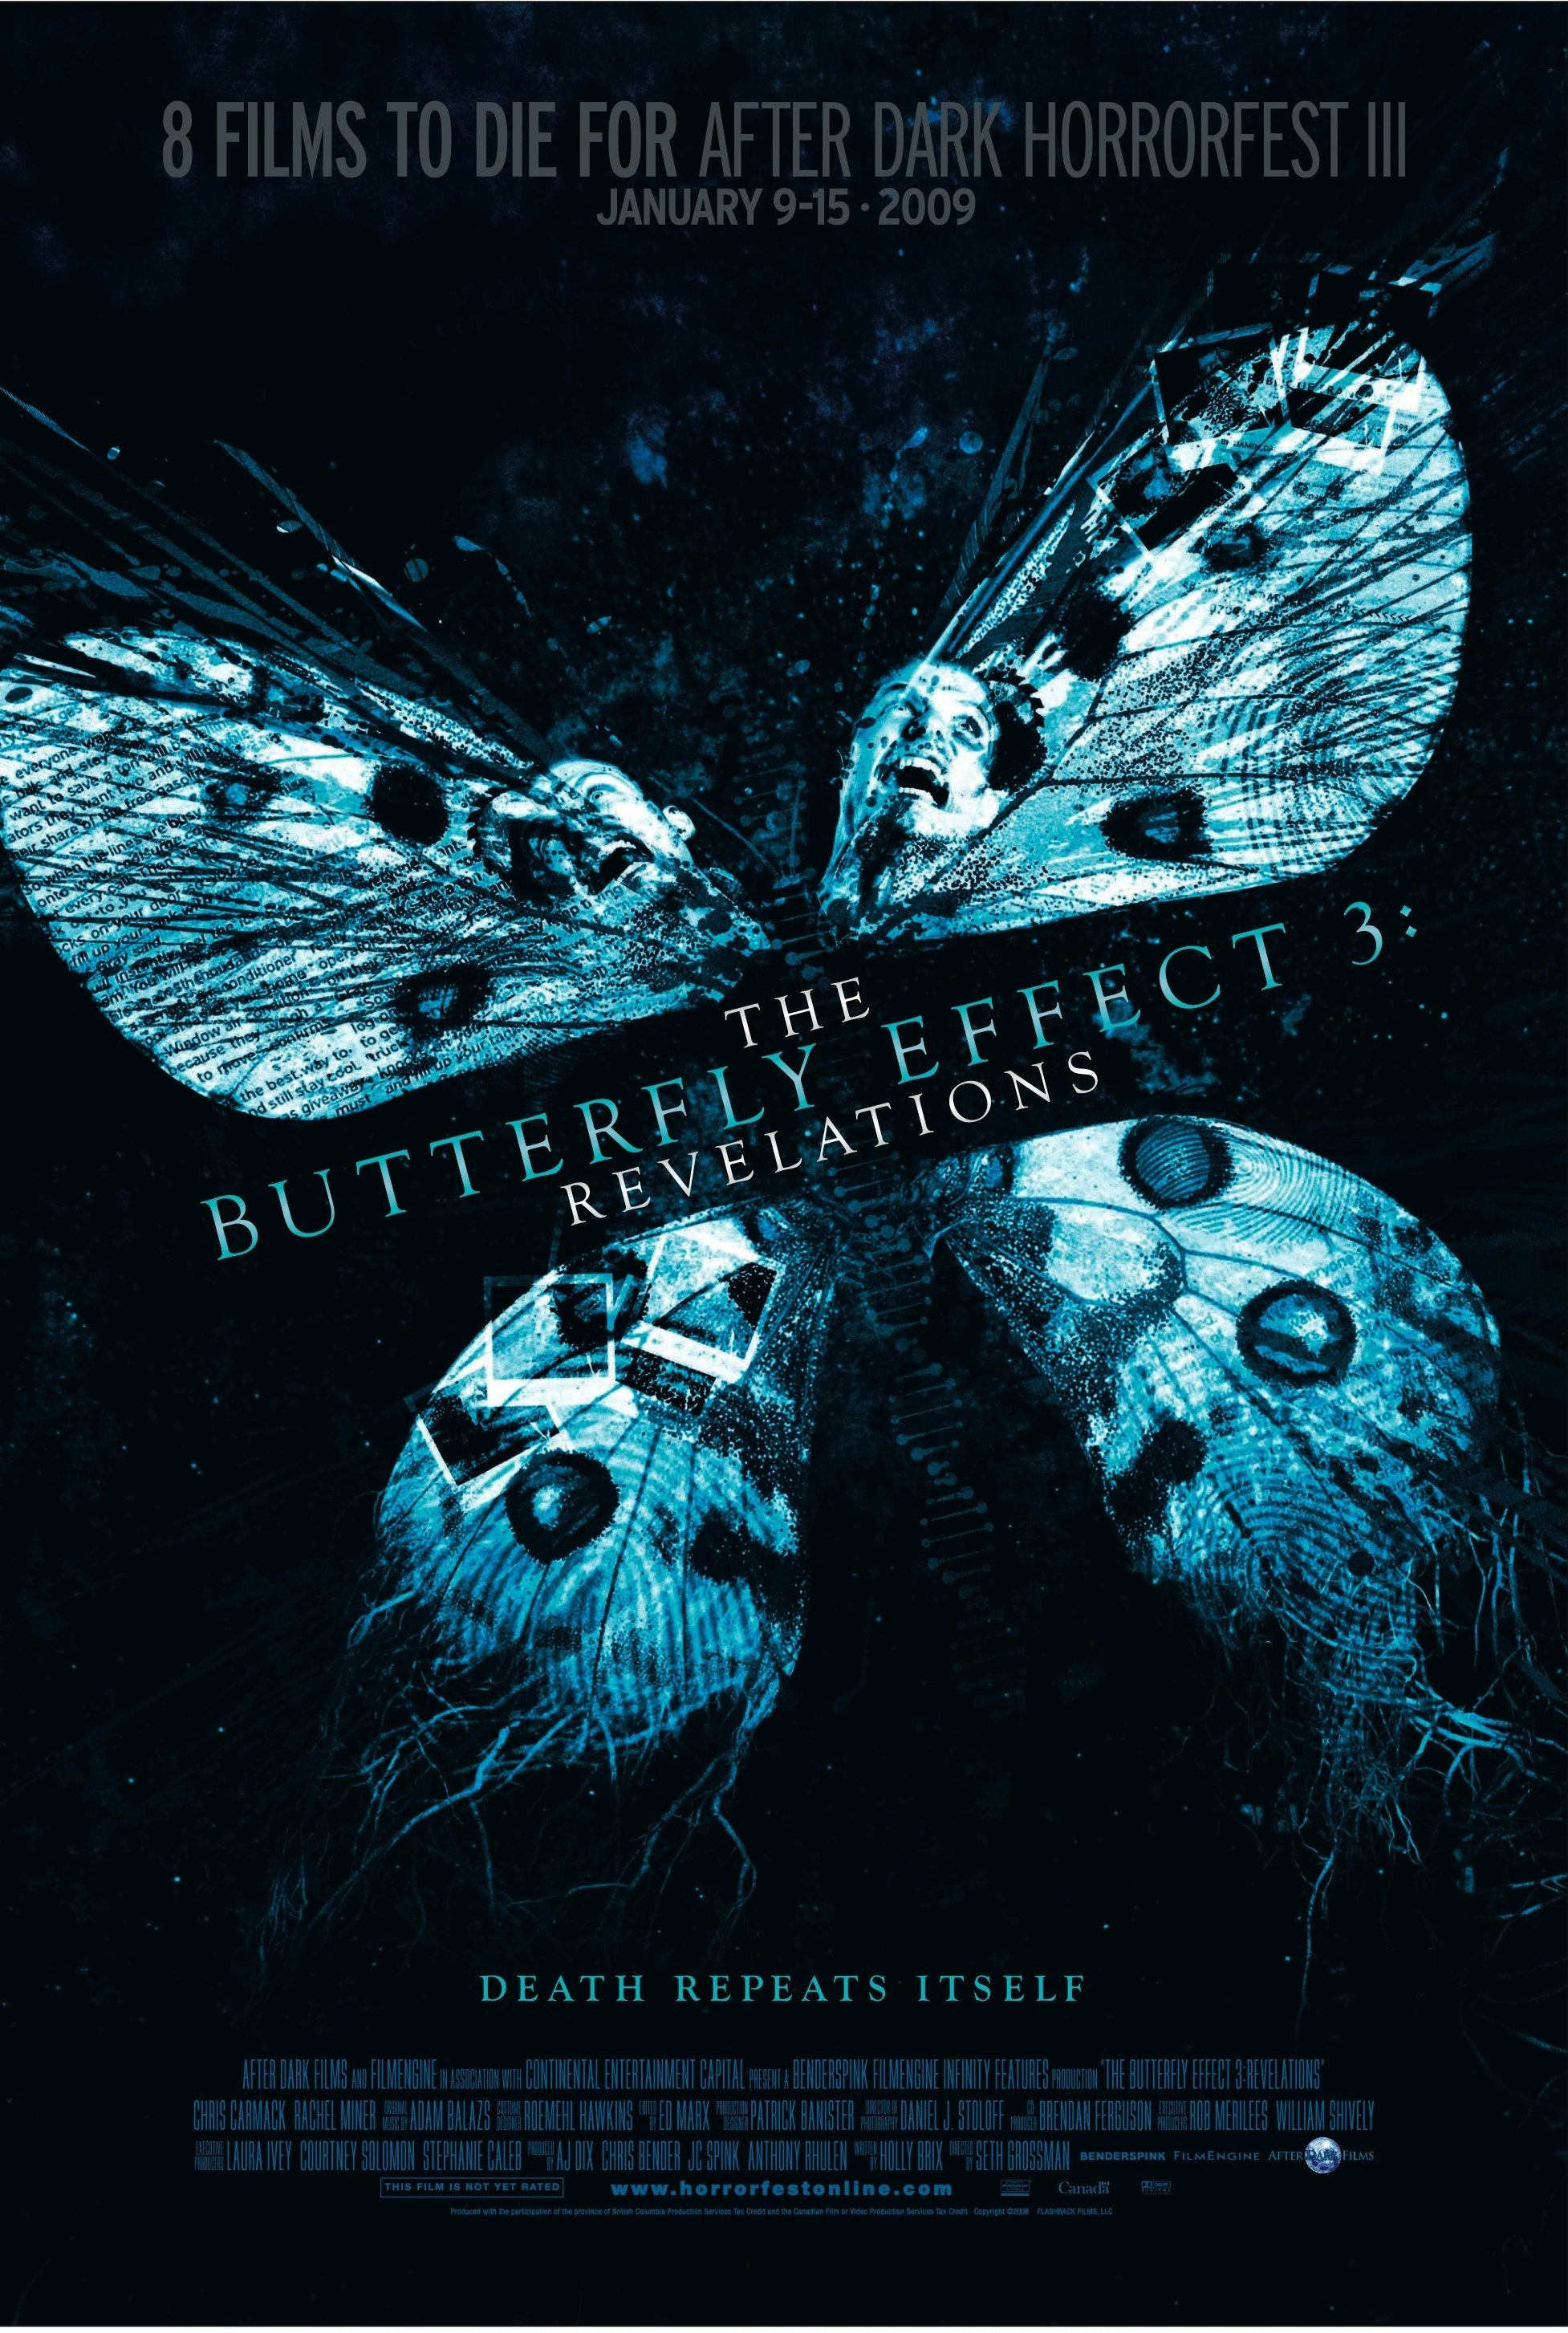 DRUGIO EFEKTAS 3 (2009) / THE BUTTERFLY EFFECT 3: REVELATIONS